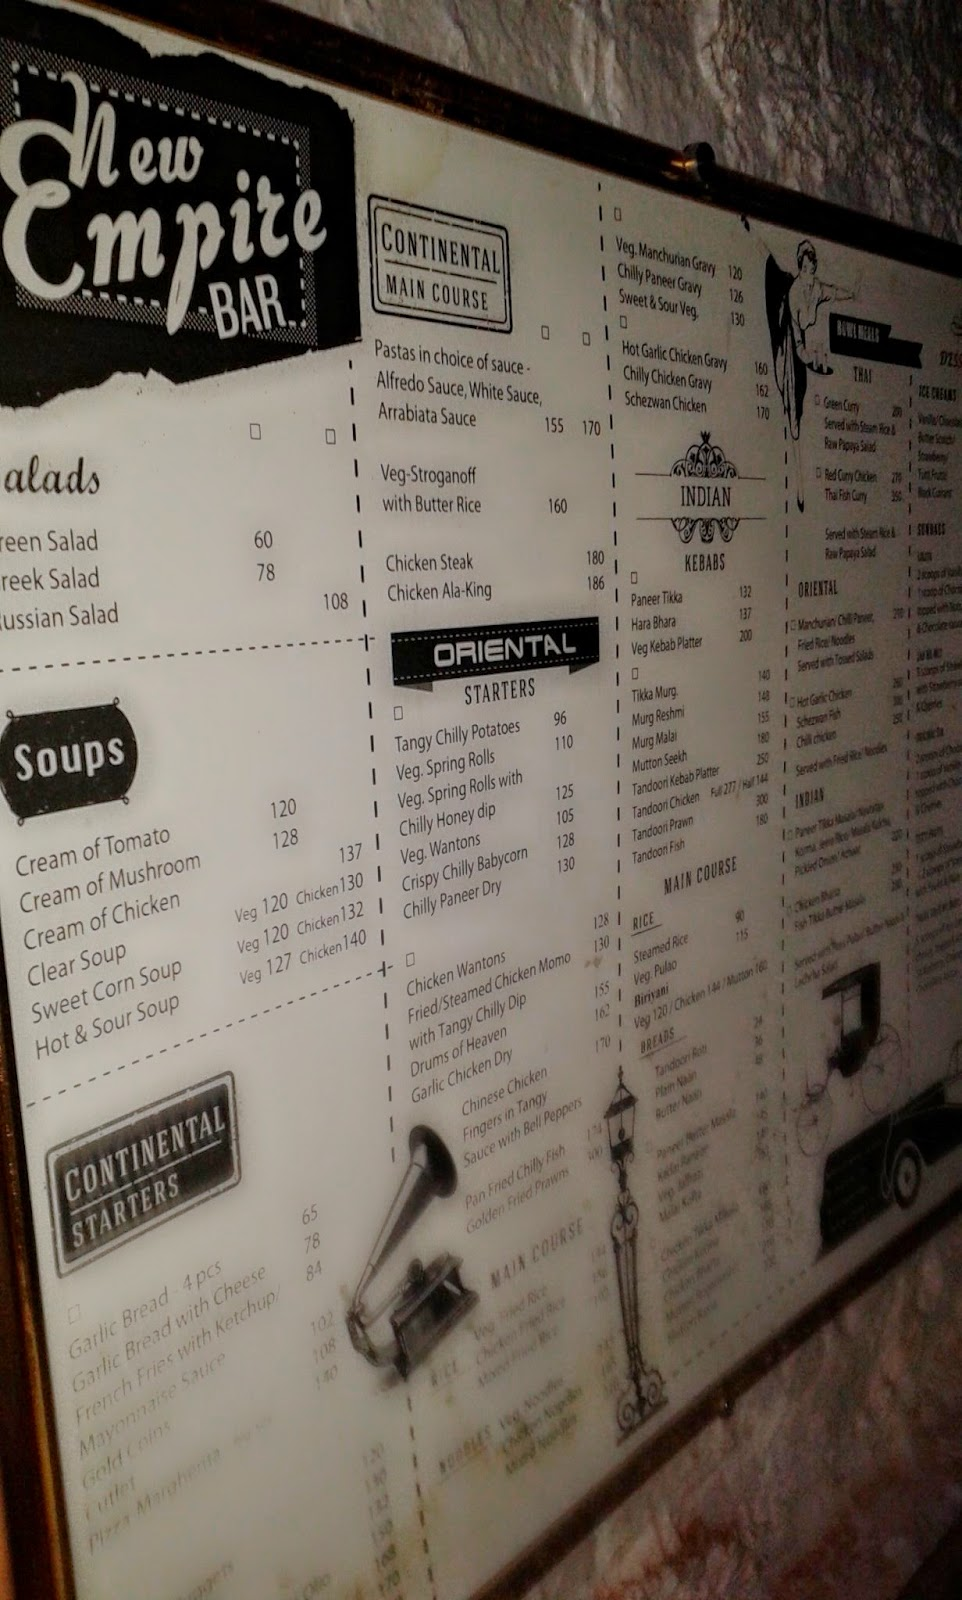 Menu at New Empire Bar, Kolkata